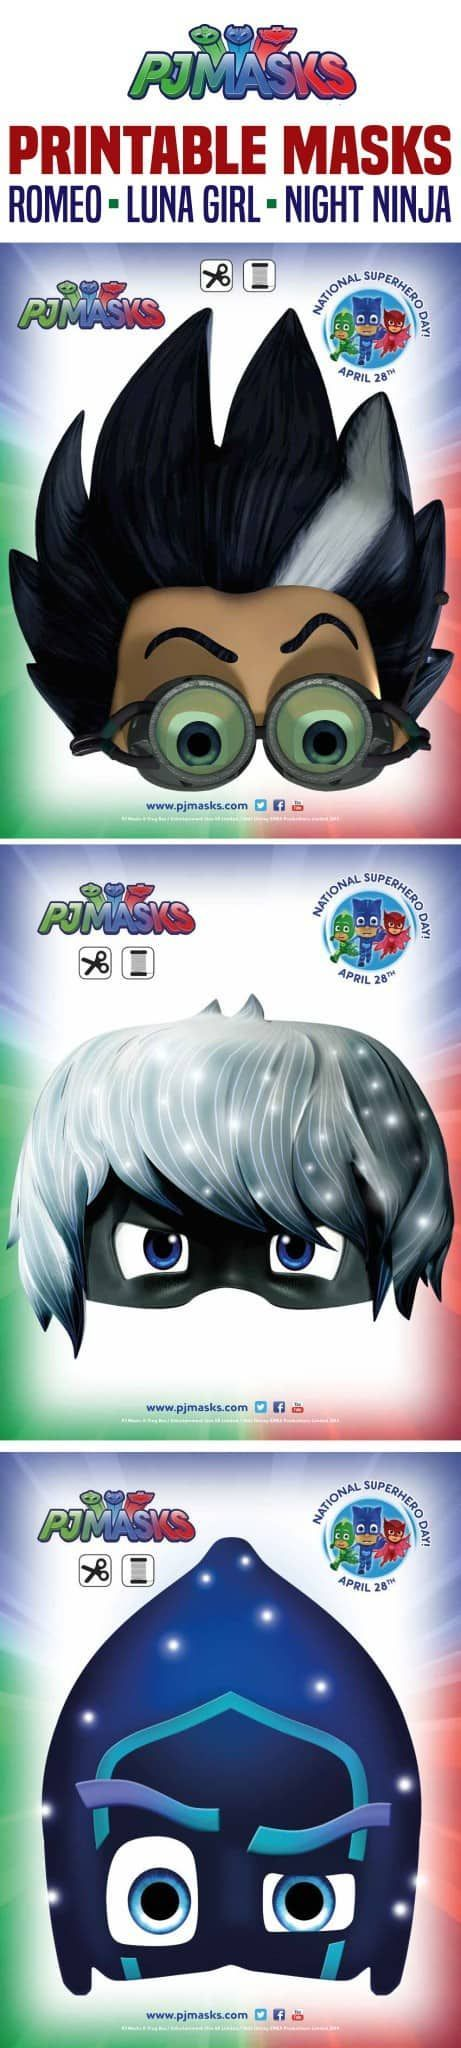 FREE PJ MASKS PRINTABLES! CLICK HERE TO PIN THIS POST The popular Disney Jr show PJ Masks has a NEW website with new games, actvities, and more! To celebrate I have PJ Masks printables – Romeo, Night Ninja, and Lunamasks – click each image to download and print! Click HERE to print Owlette, Gekko, and …